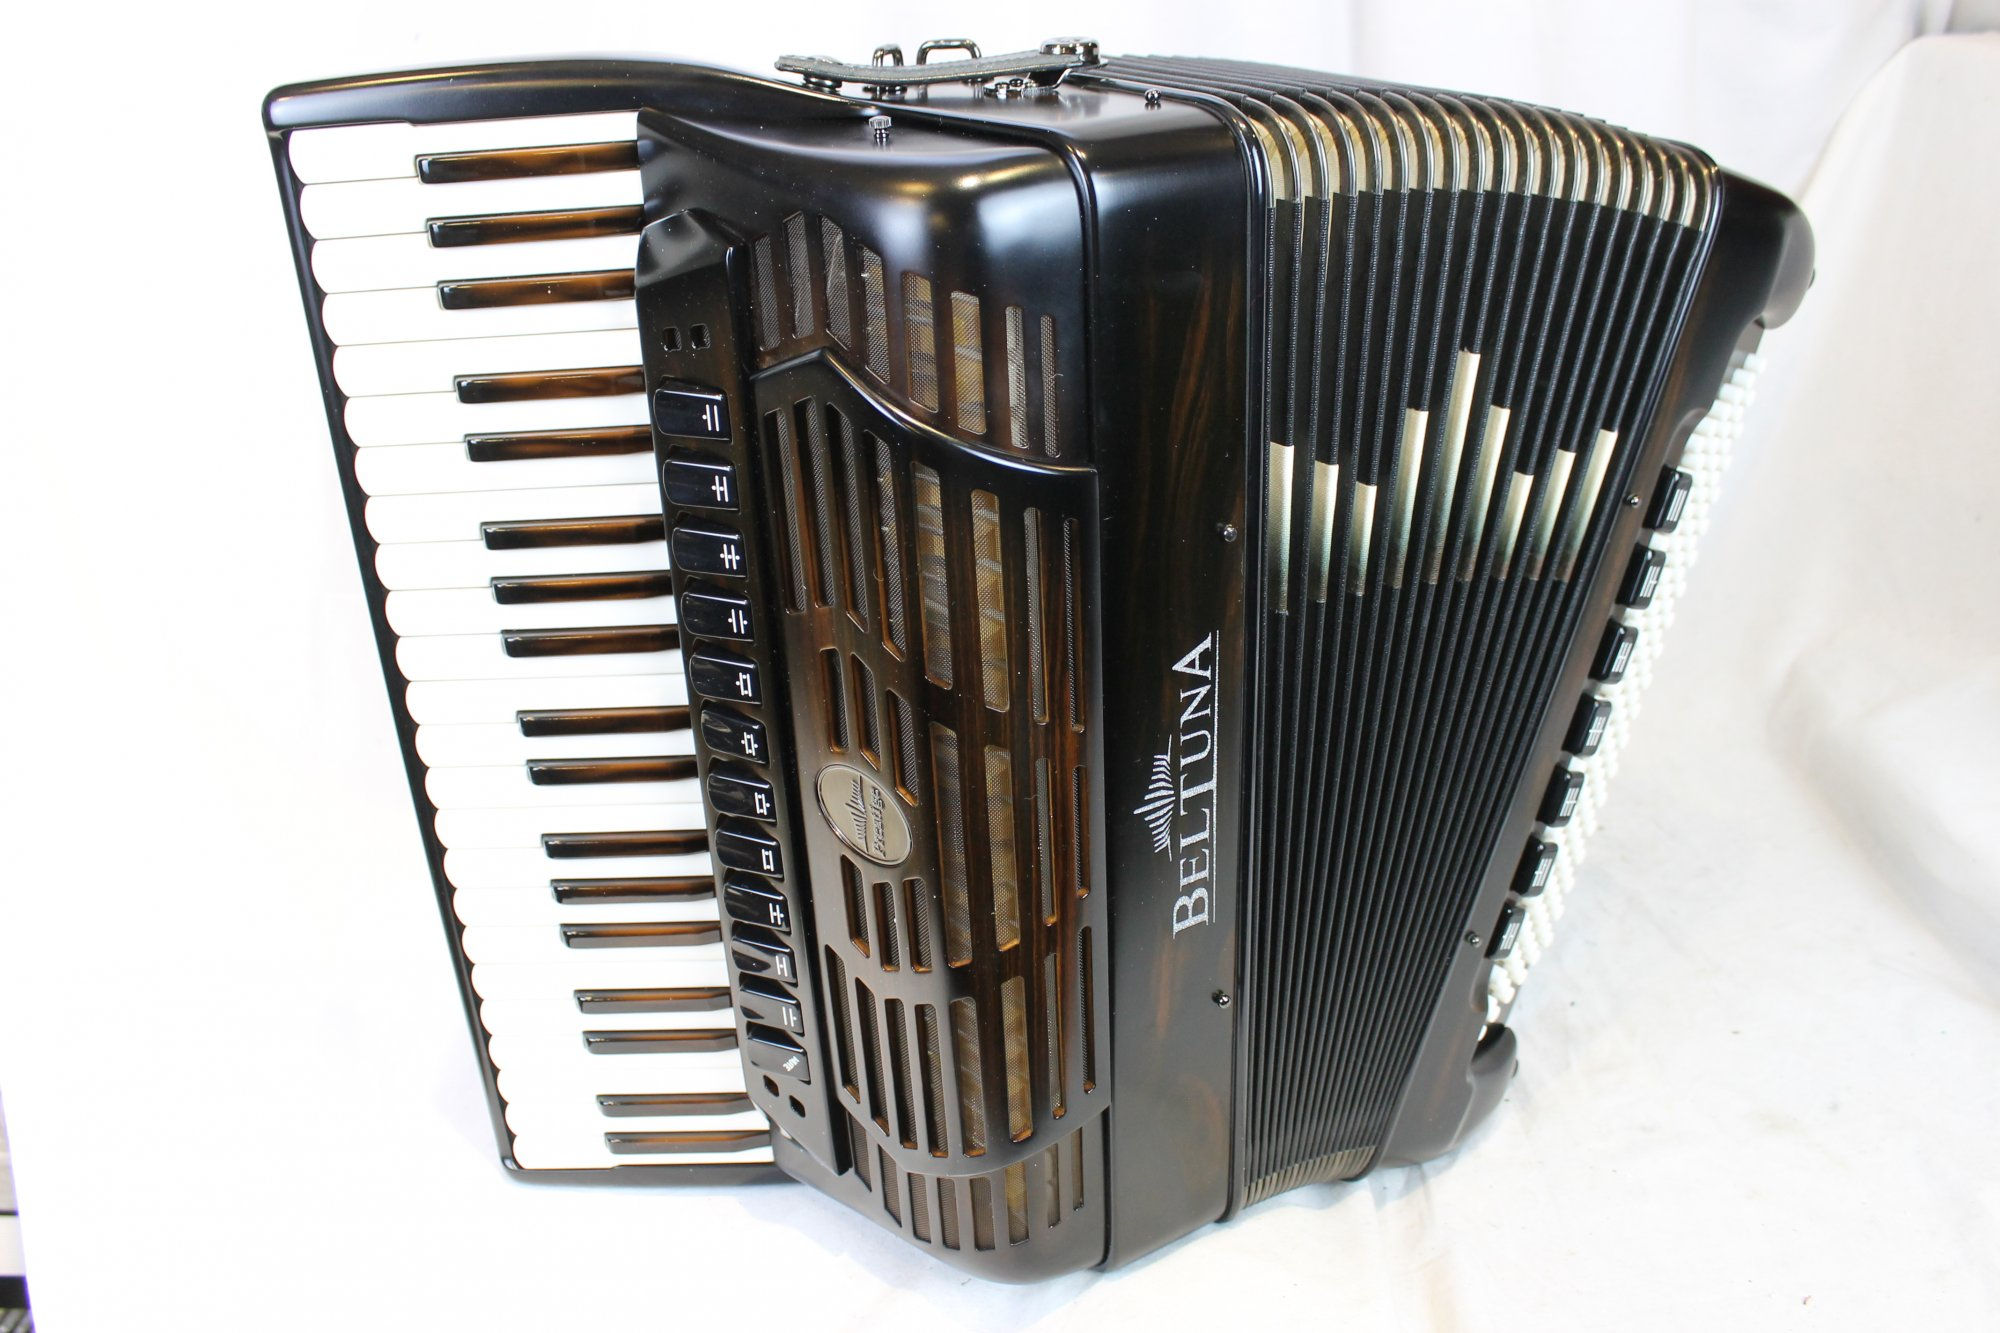 NEW Ebony Beltuna Prestige IV Slender Piano Accordion LMMH 41 120